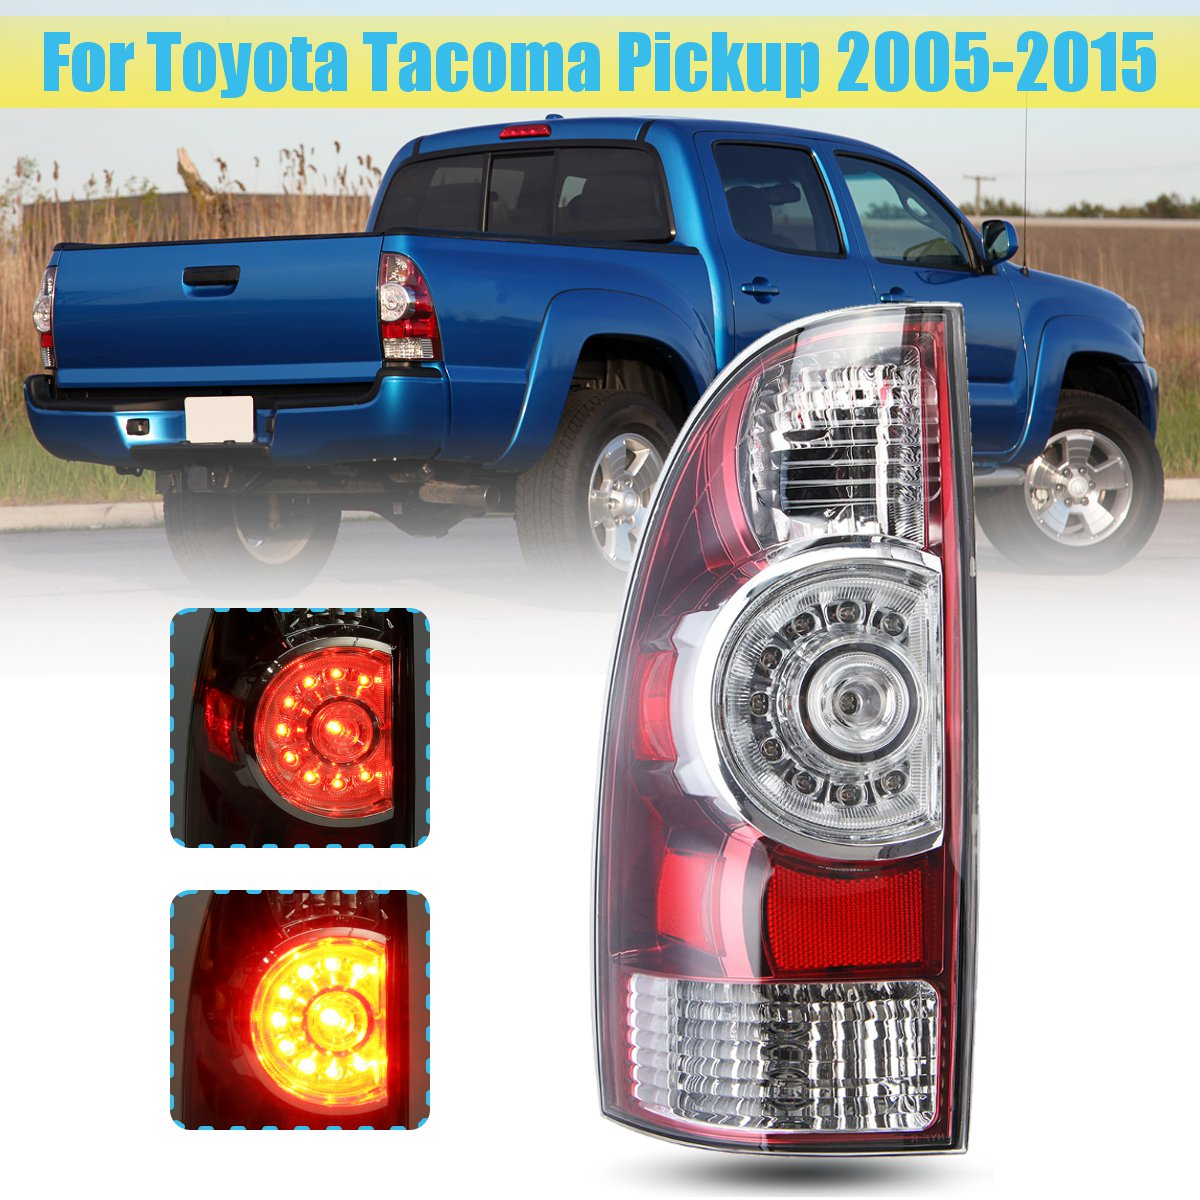 Tail Light Lamp With Wire Harness LED Rear Tail Light Brake Lamp For Toyota Tacoma Pickup 2005 2006 2007 2008 2009 2010-2015Tail Light Lamp With Wire Harness LED Rear Tail Light Brake Lamp For Toyota Tacoma Pickup 2005 2006 2007 2008 2009 2010-2015